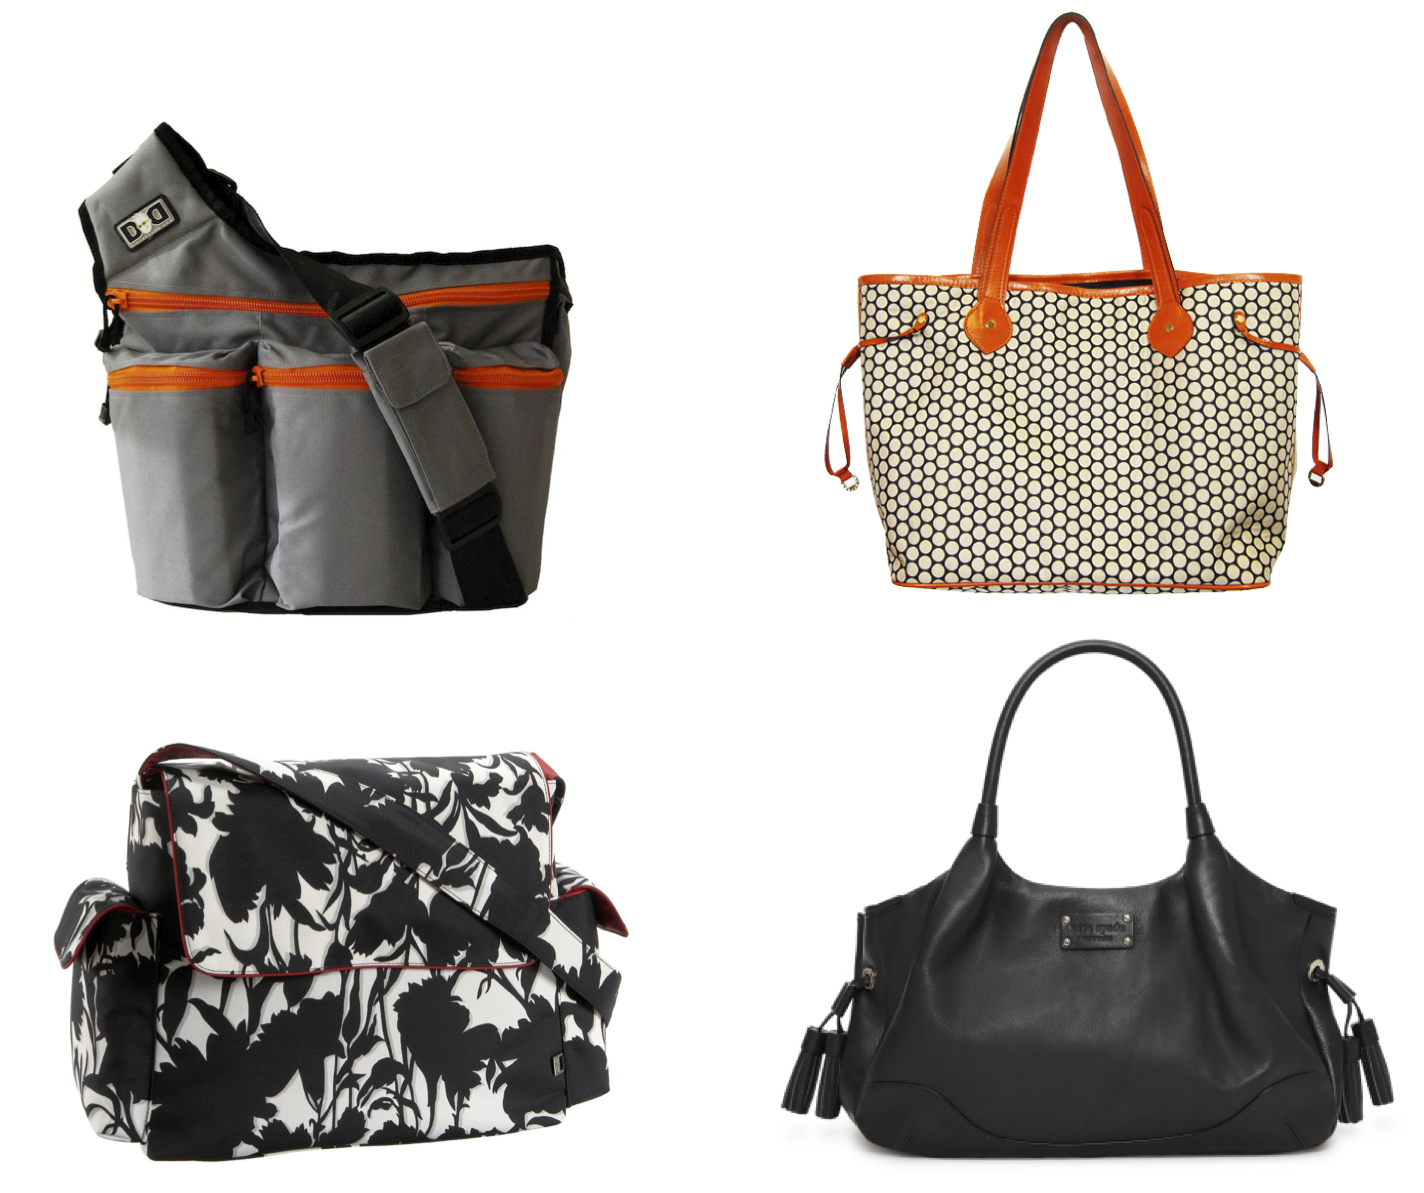 Diaper Bags for Moms and Dads: Our Top 20 List